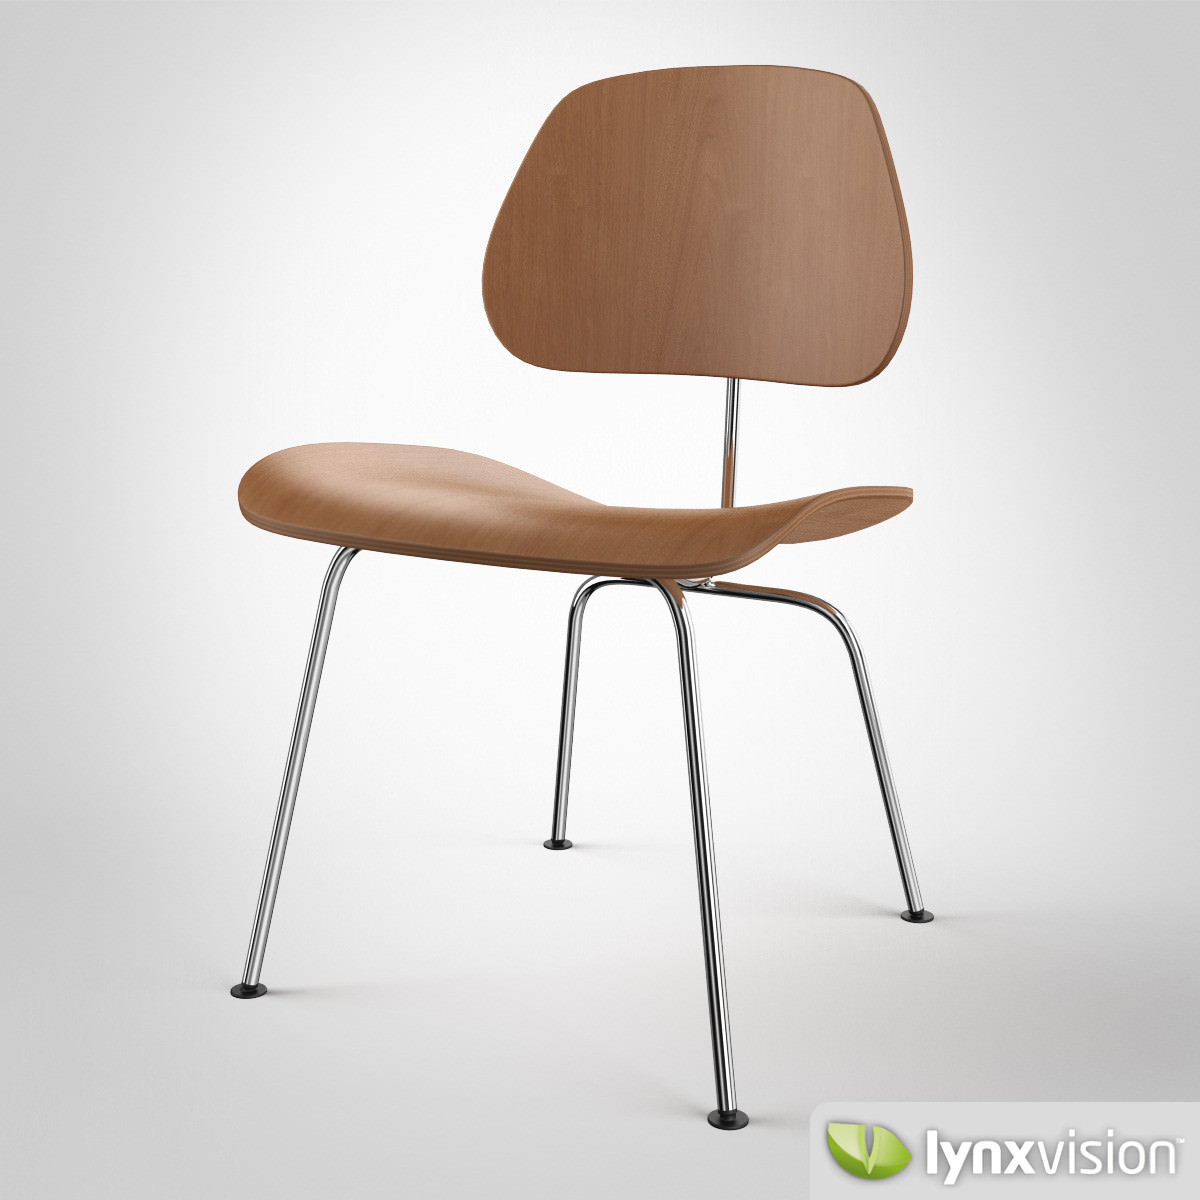 charles ray furniture. Dcm Chair By Charles Ray Eames 3d Model Max Obj Fbx Mtl 1 Furniture